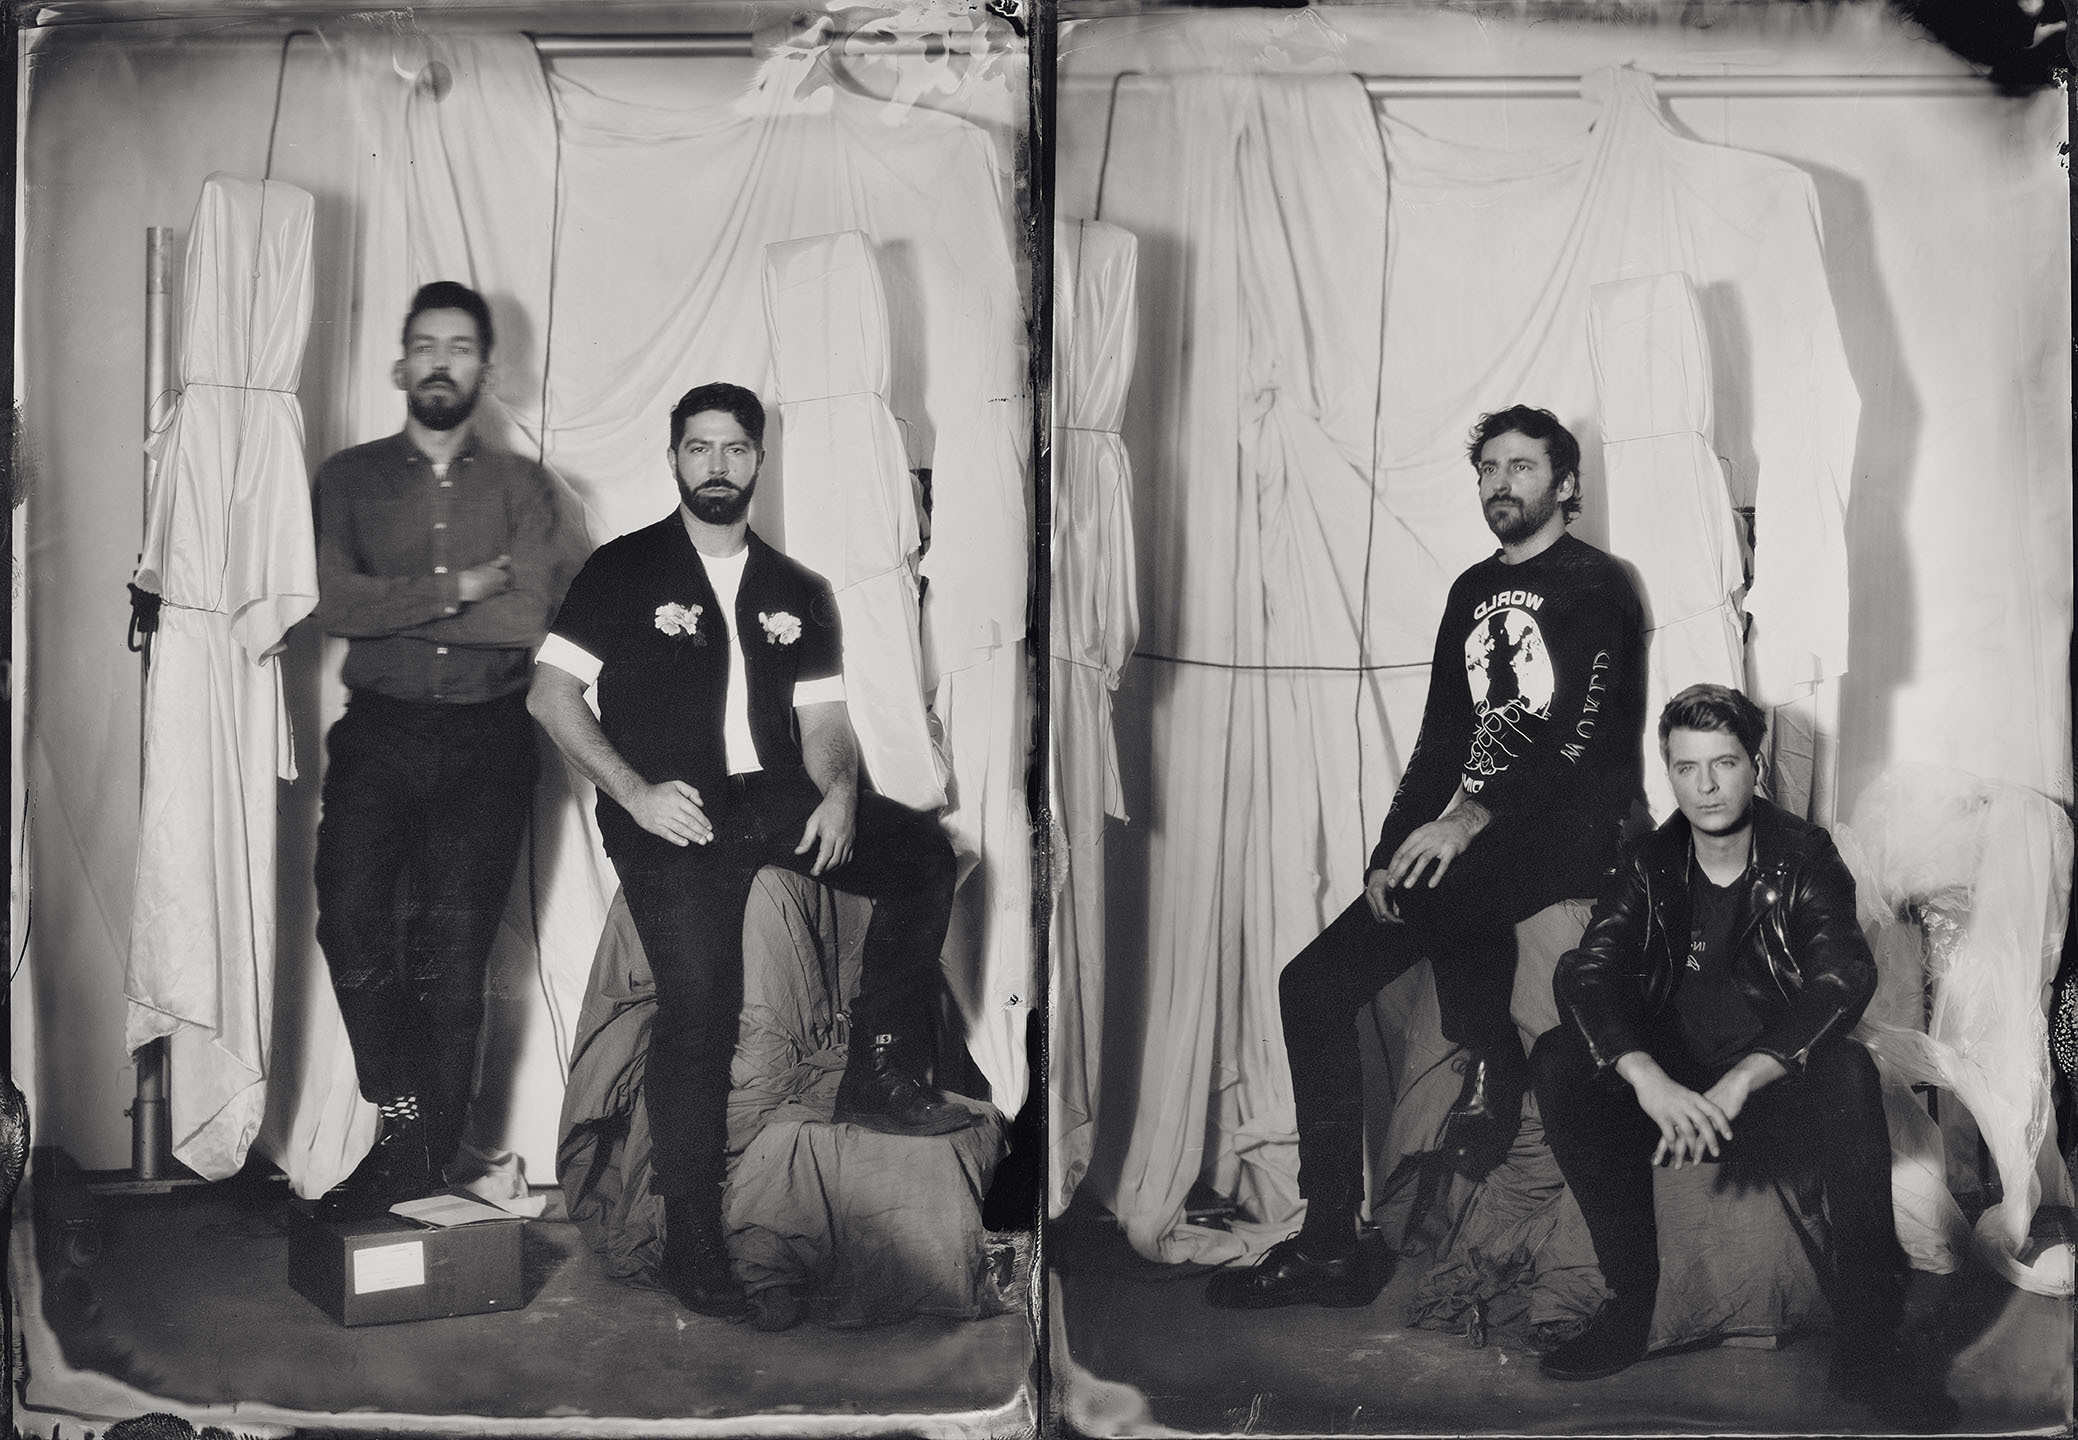 Foals: Four horsemen of the apocalypse